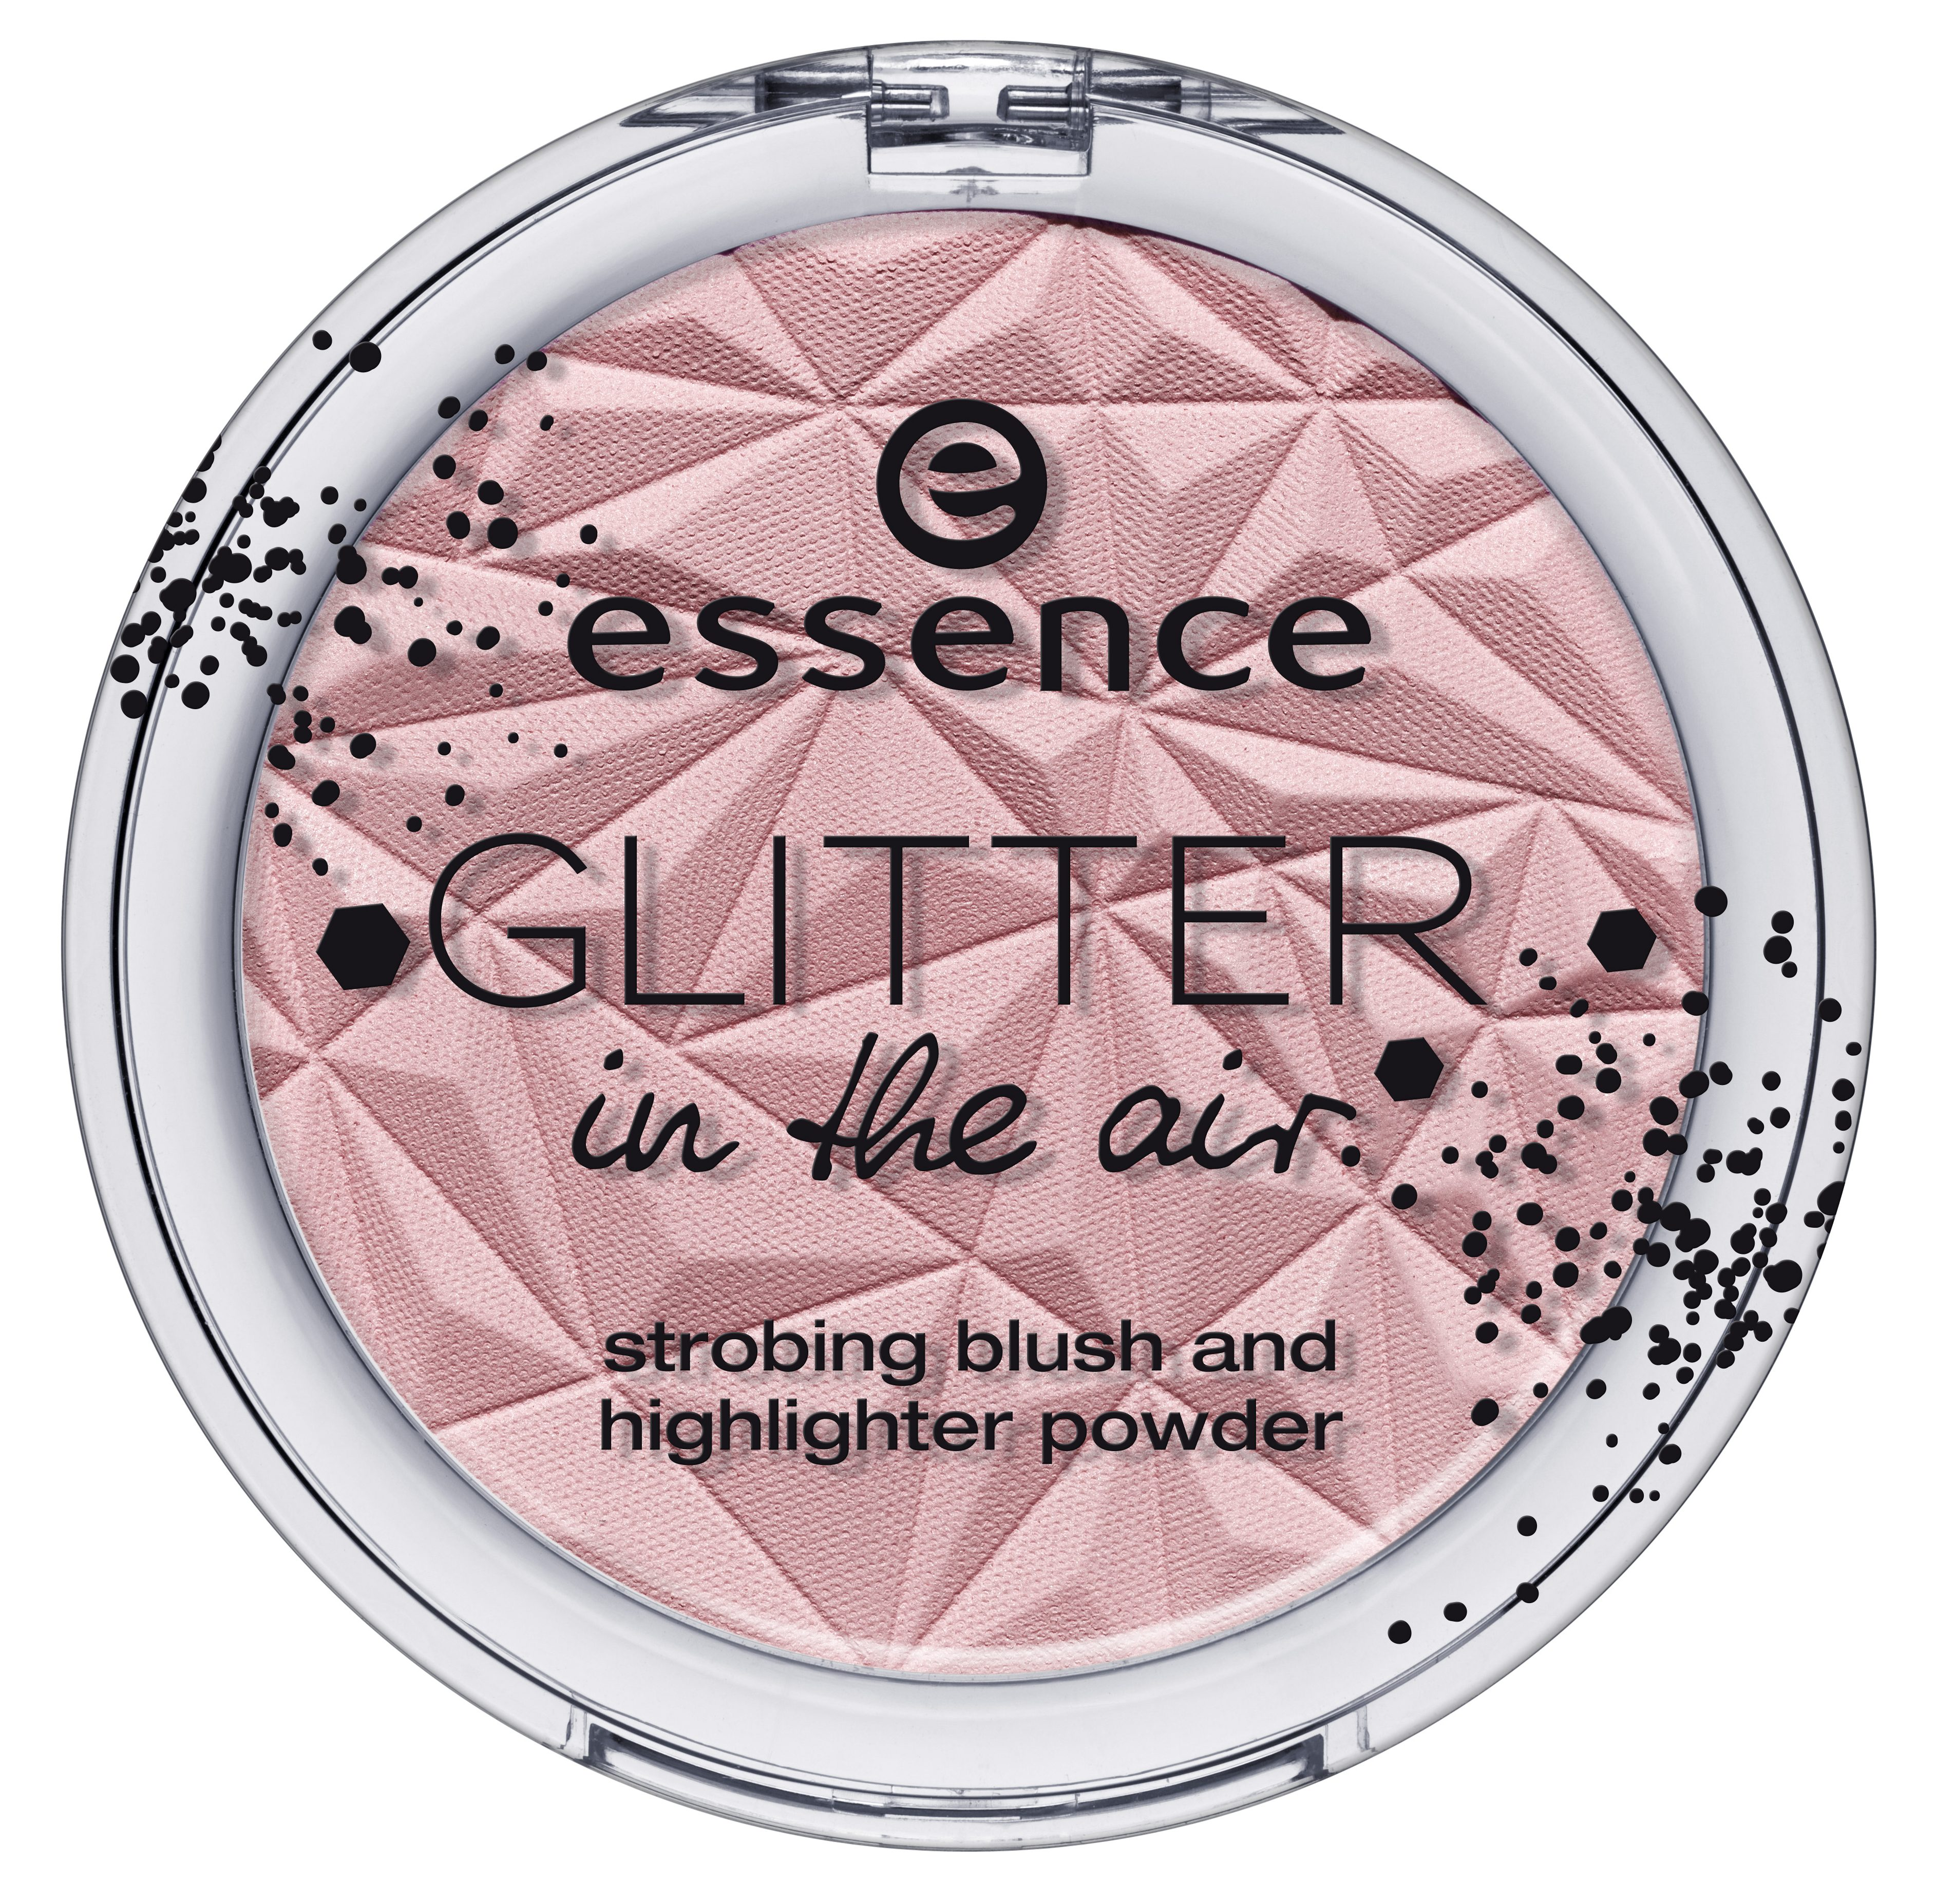 essence-glitter-in-the-air-strobing-blush-and-highlighter-powder